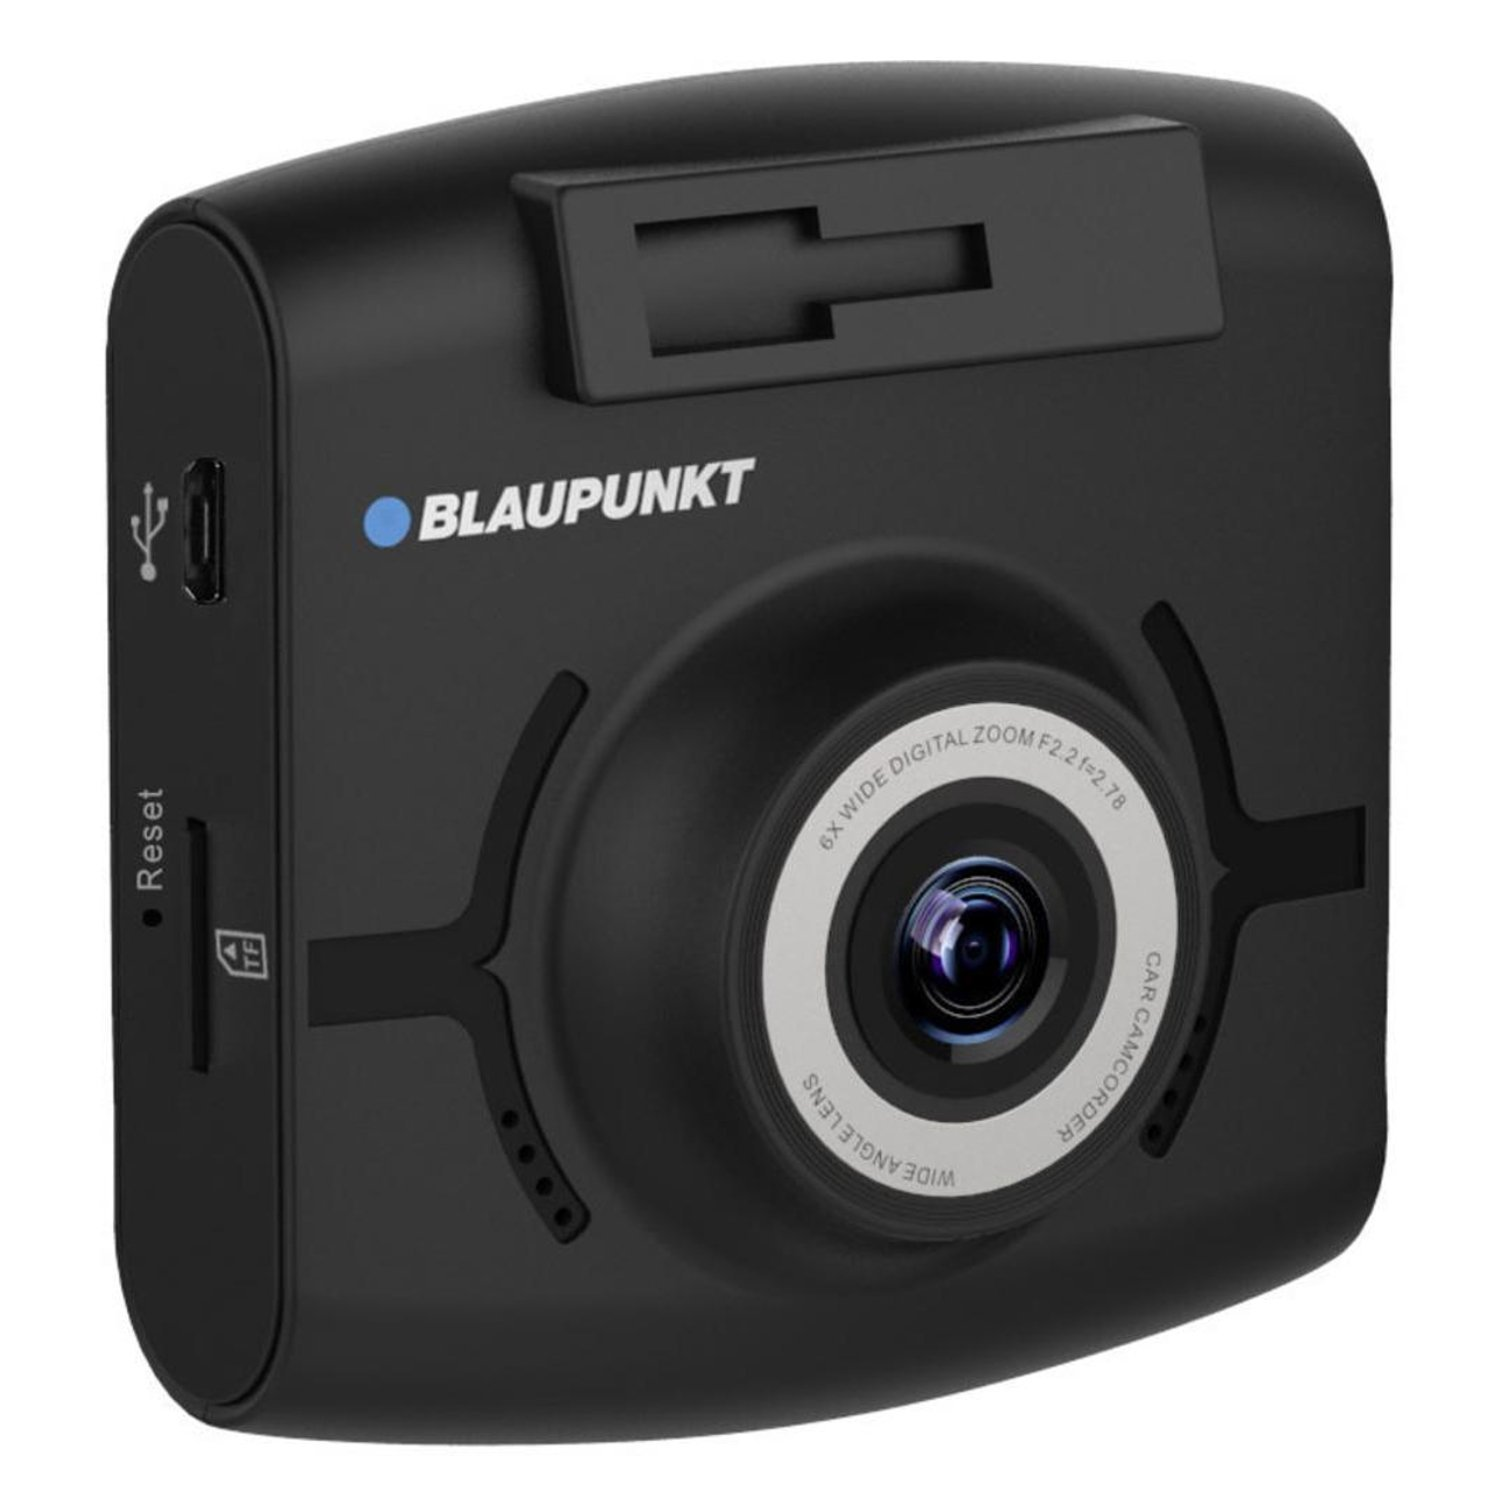 Blaupunkt BP 2.1 FHD Digital Video dashcam